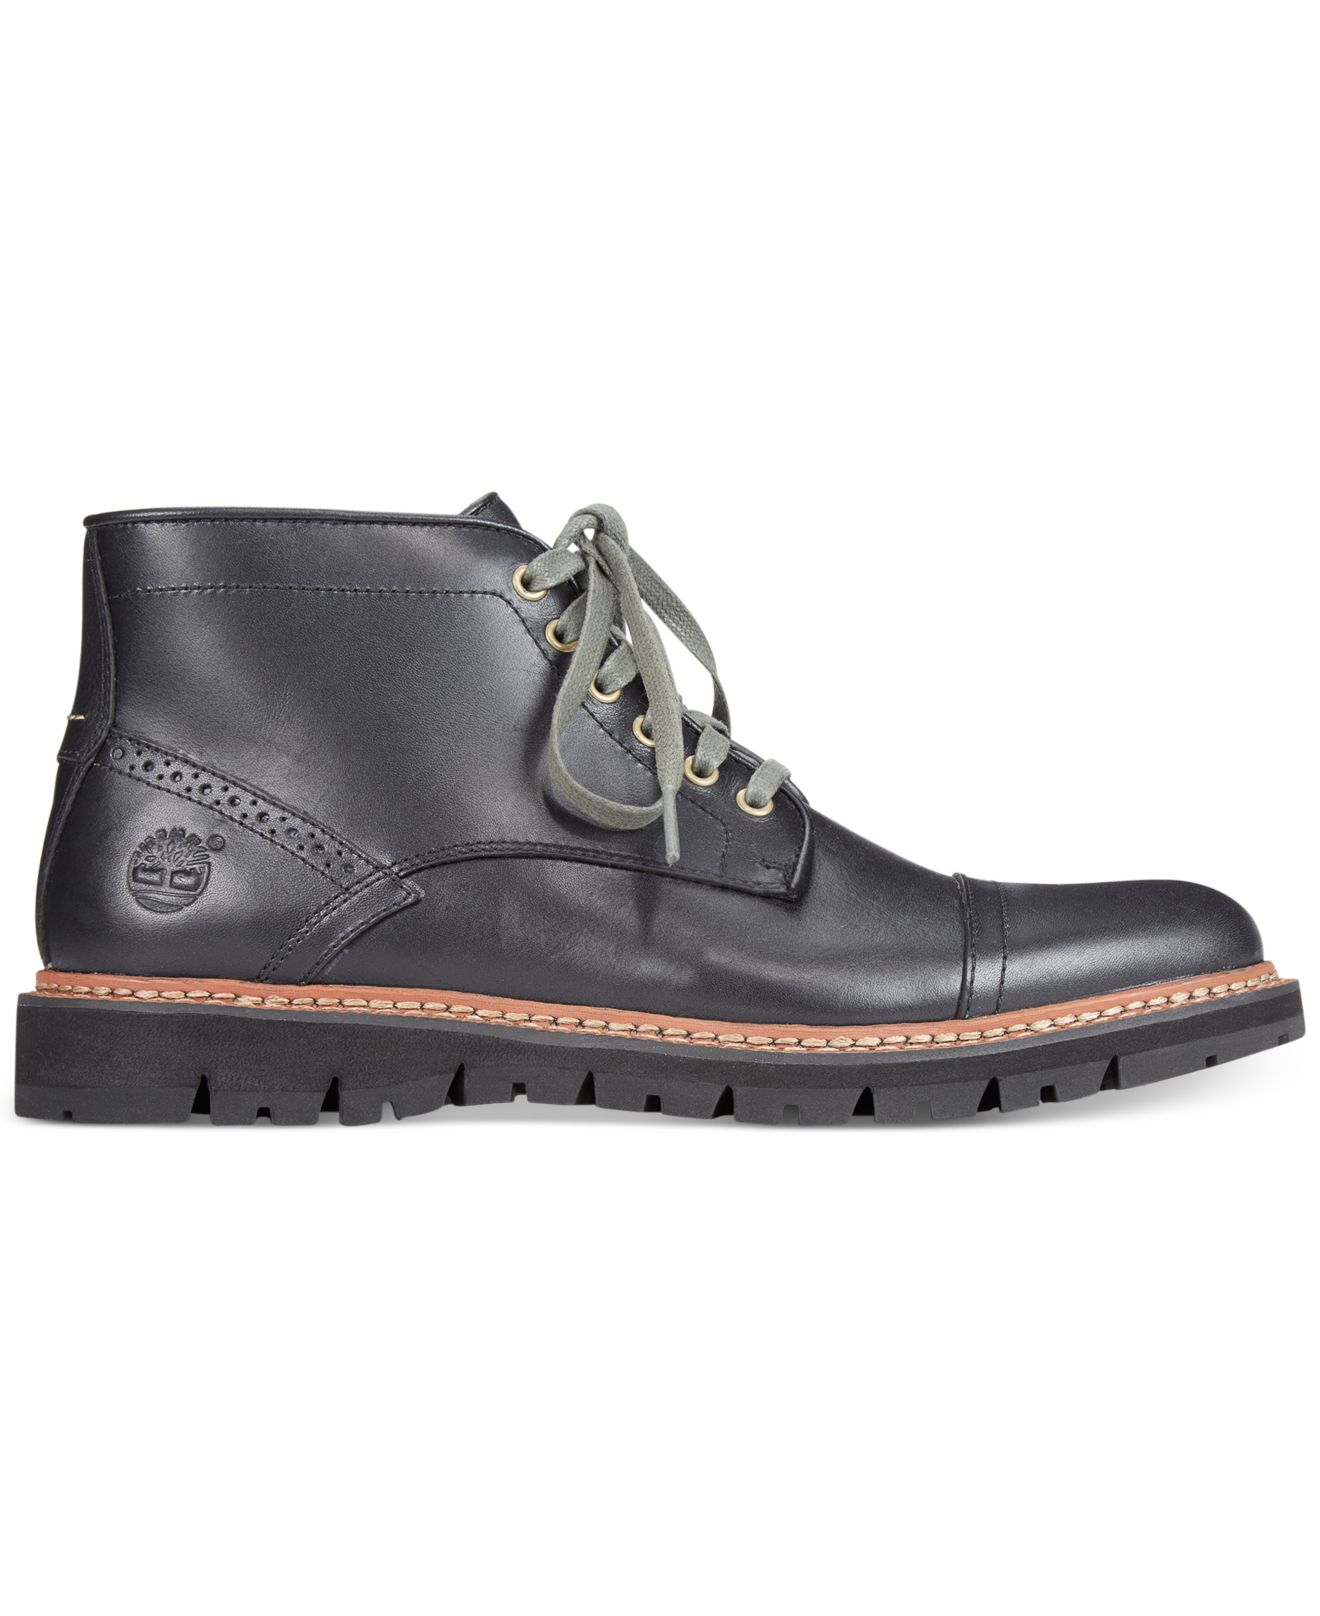 20d86431f806 Lyst - Timberland Earthkeepers Britton Hill Chukka Boots in Black ...